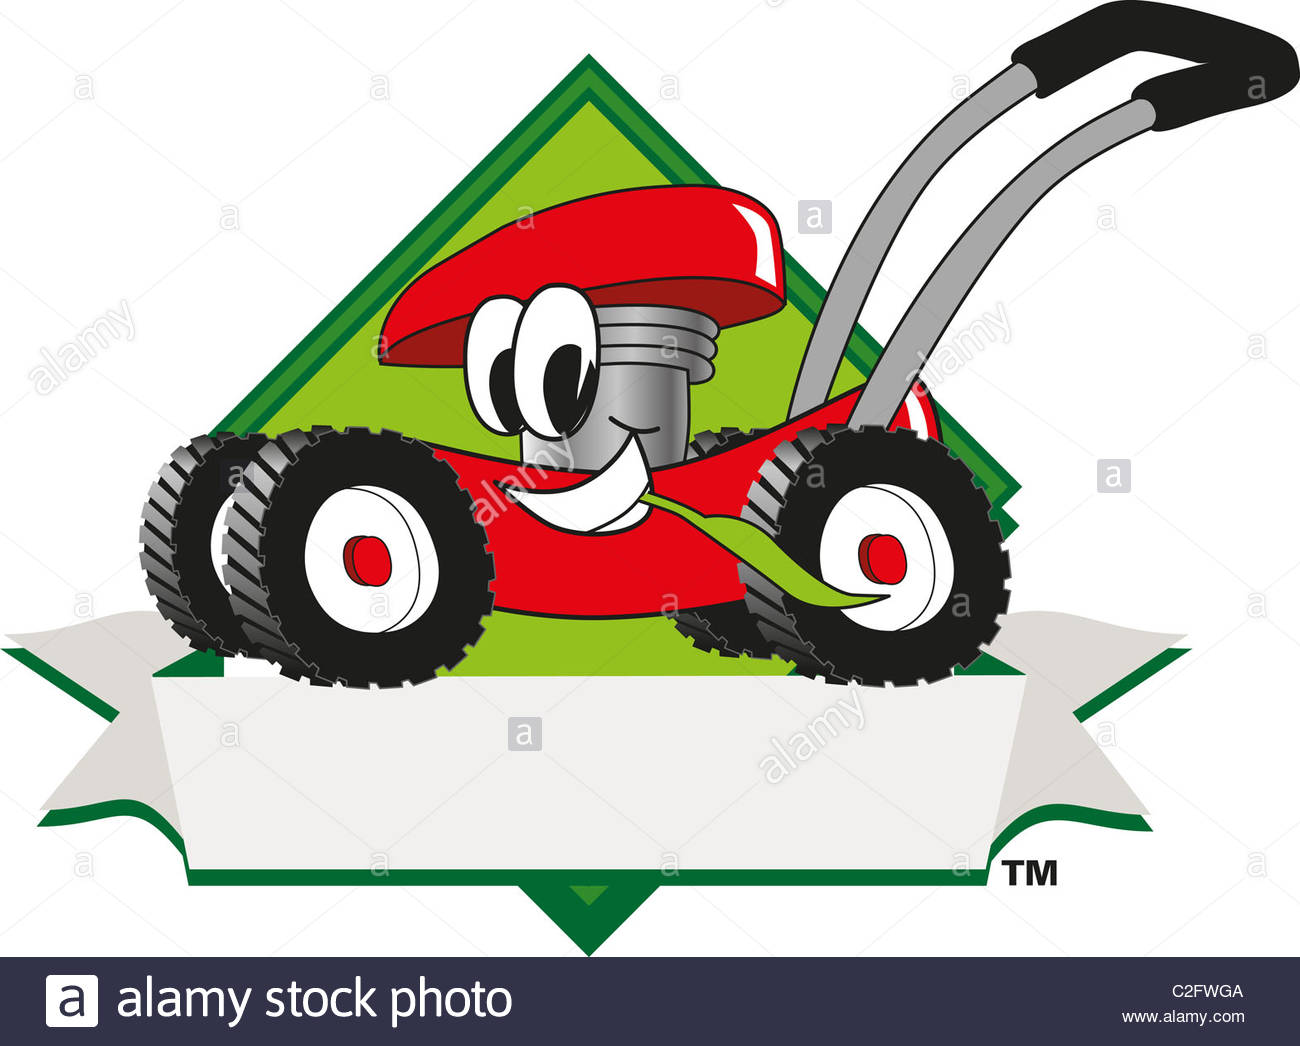 1300x1046 Cartoon Lawn Mower Clip Art And Logo Template Stock Photo, Royalty